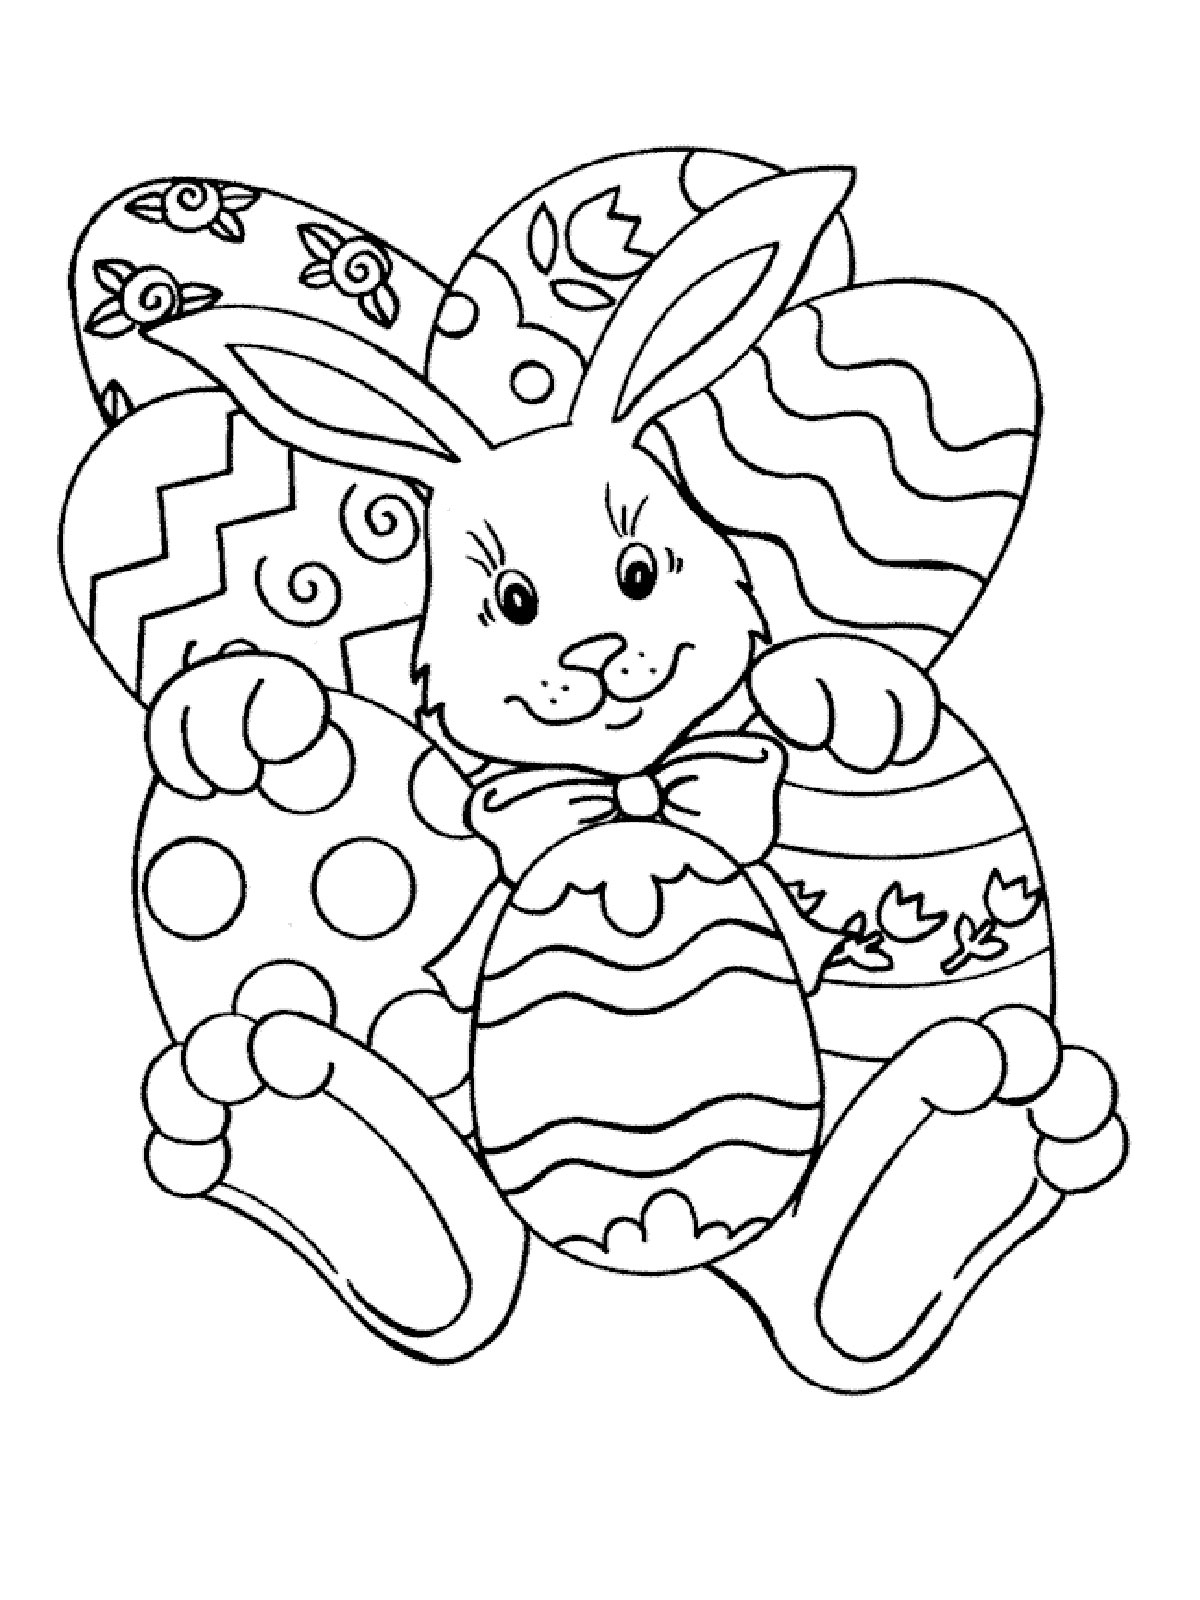 Free easter coloring pages for toddlers - Free Easter Coloring Pages To Print For Kids Download Print And Color